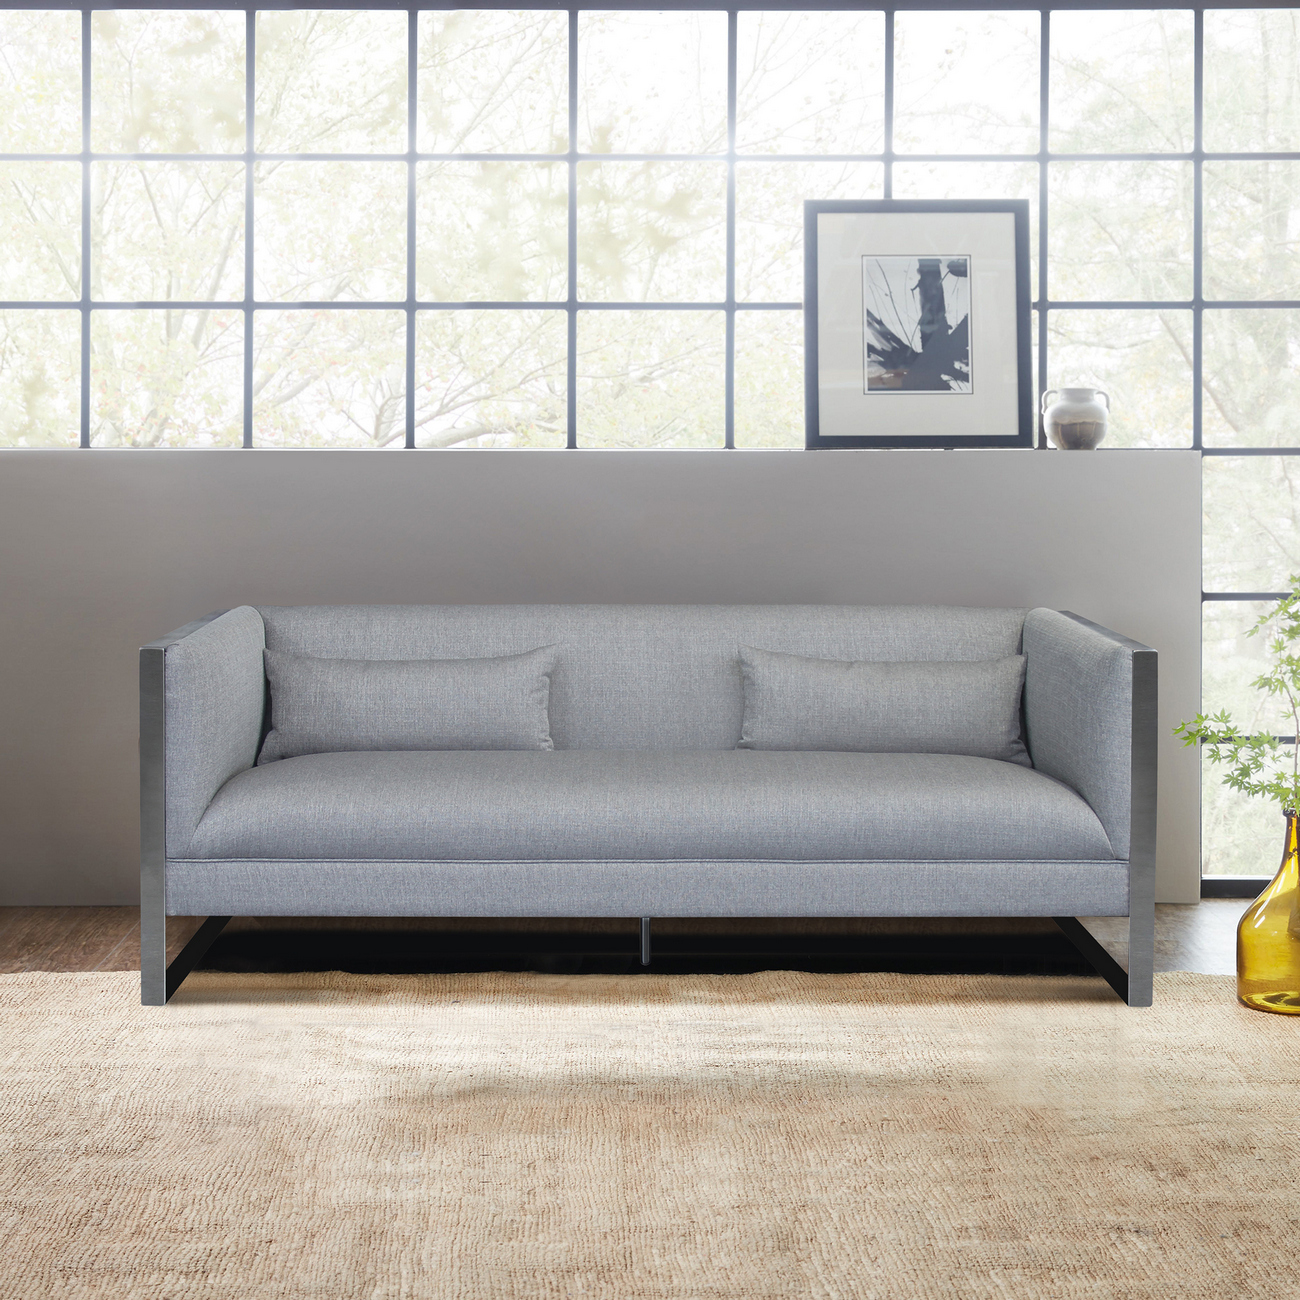 Contemporary   Stainless   Polish   Fabric   Steel   Sofa   Live   Grey